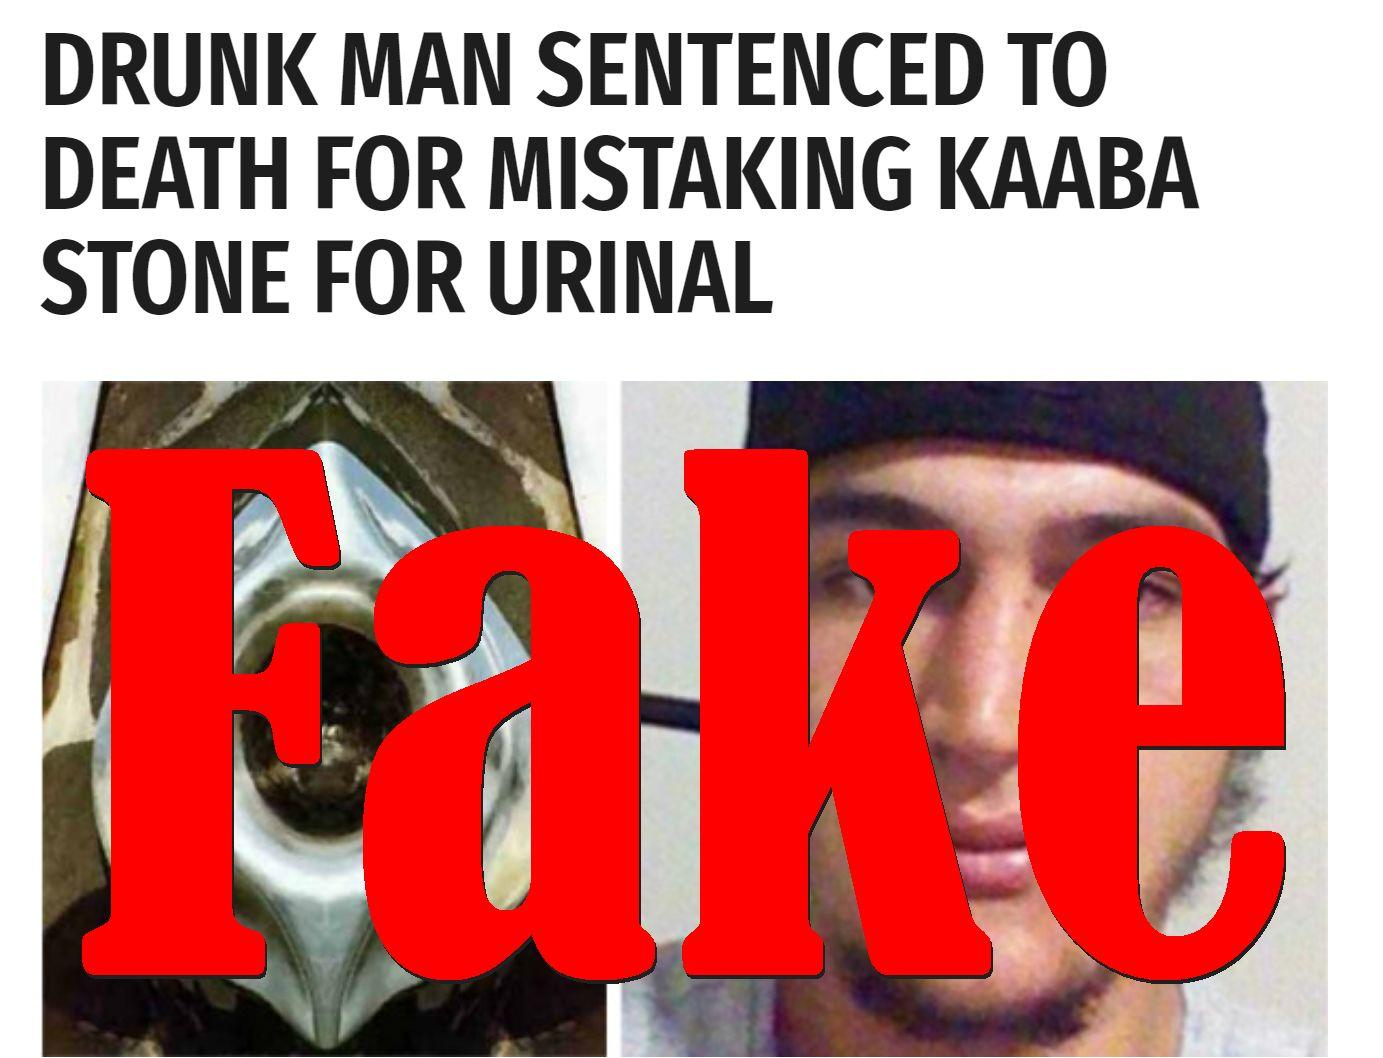 Fake News: Drunk Man NOT Sentenced To Death, Did NOT Mistake Kaaba Stone For Urinal